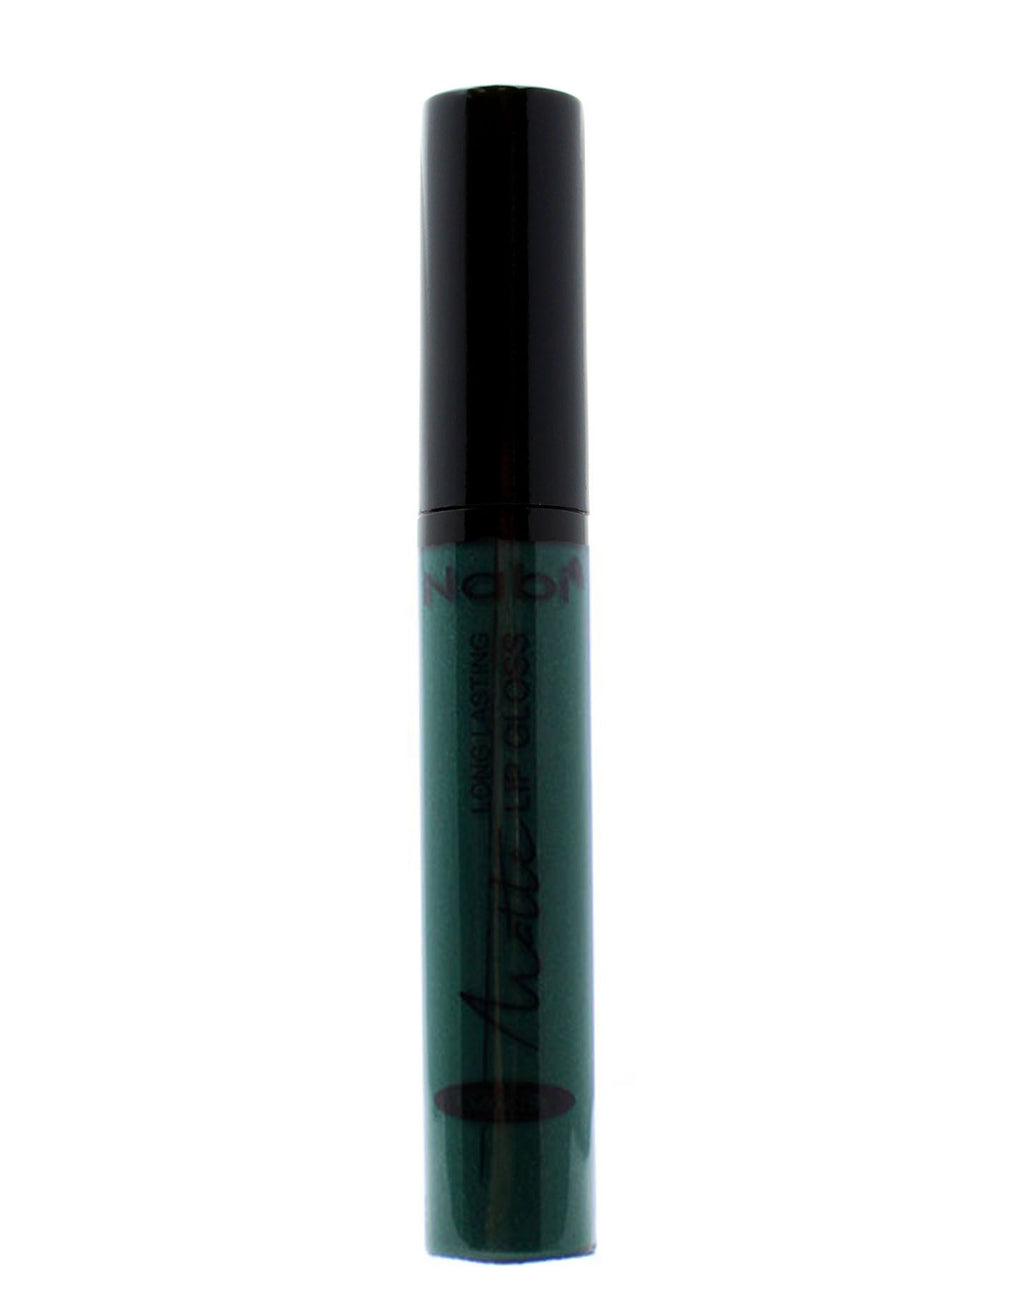 MLG54 - Long Lasting Matte Lip Gloss Emerald